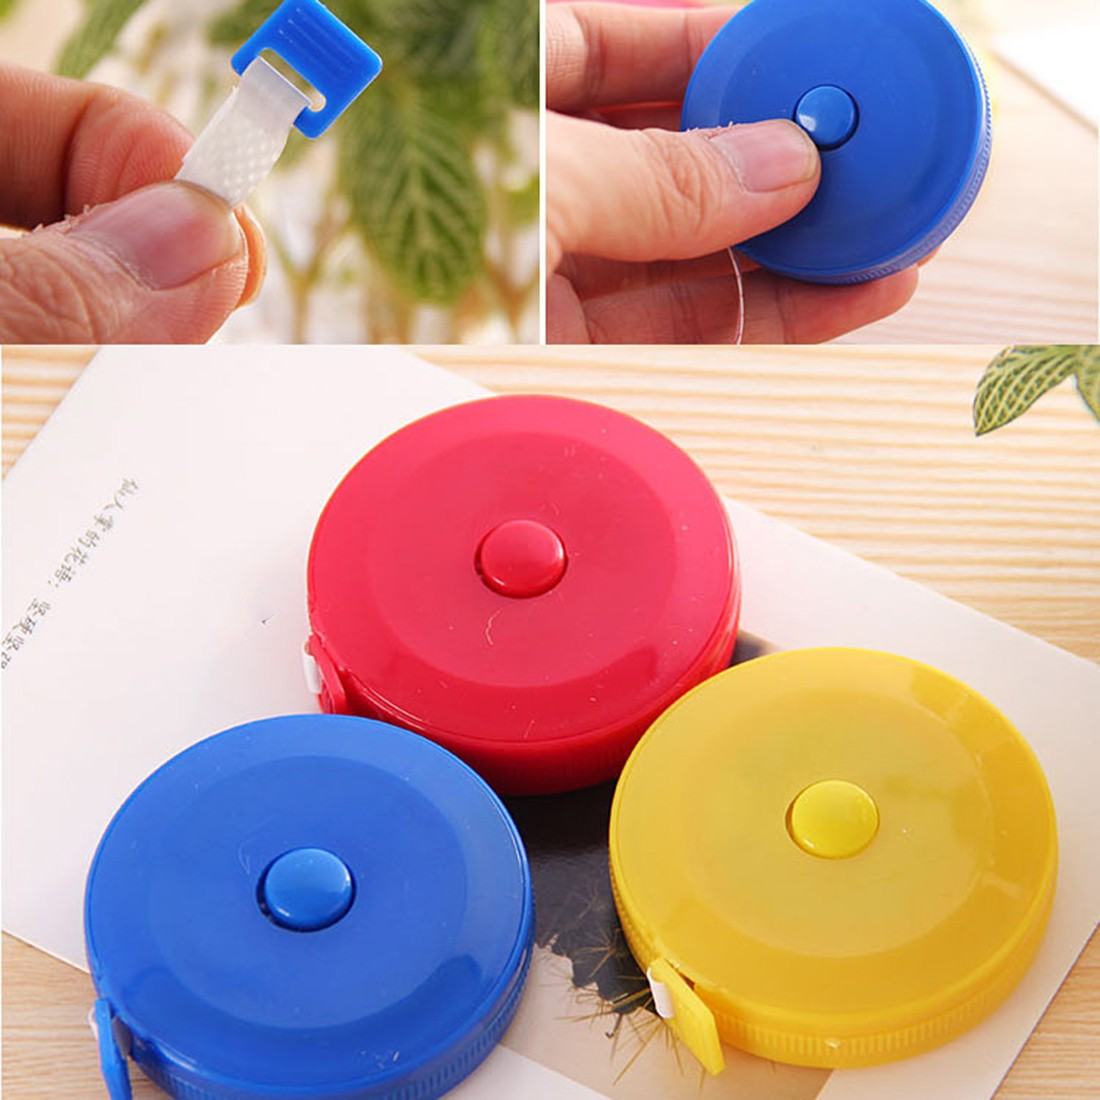 Specially 1 PCS Useful Retractable Ruler Tape Measure Sewing Cloth Dieting Tailor 1.5M Mini Cute Style Random Color new 1pc 1m 3ft easy retractable ruler tape measure mini portable pull ruler keychain color random